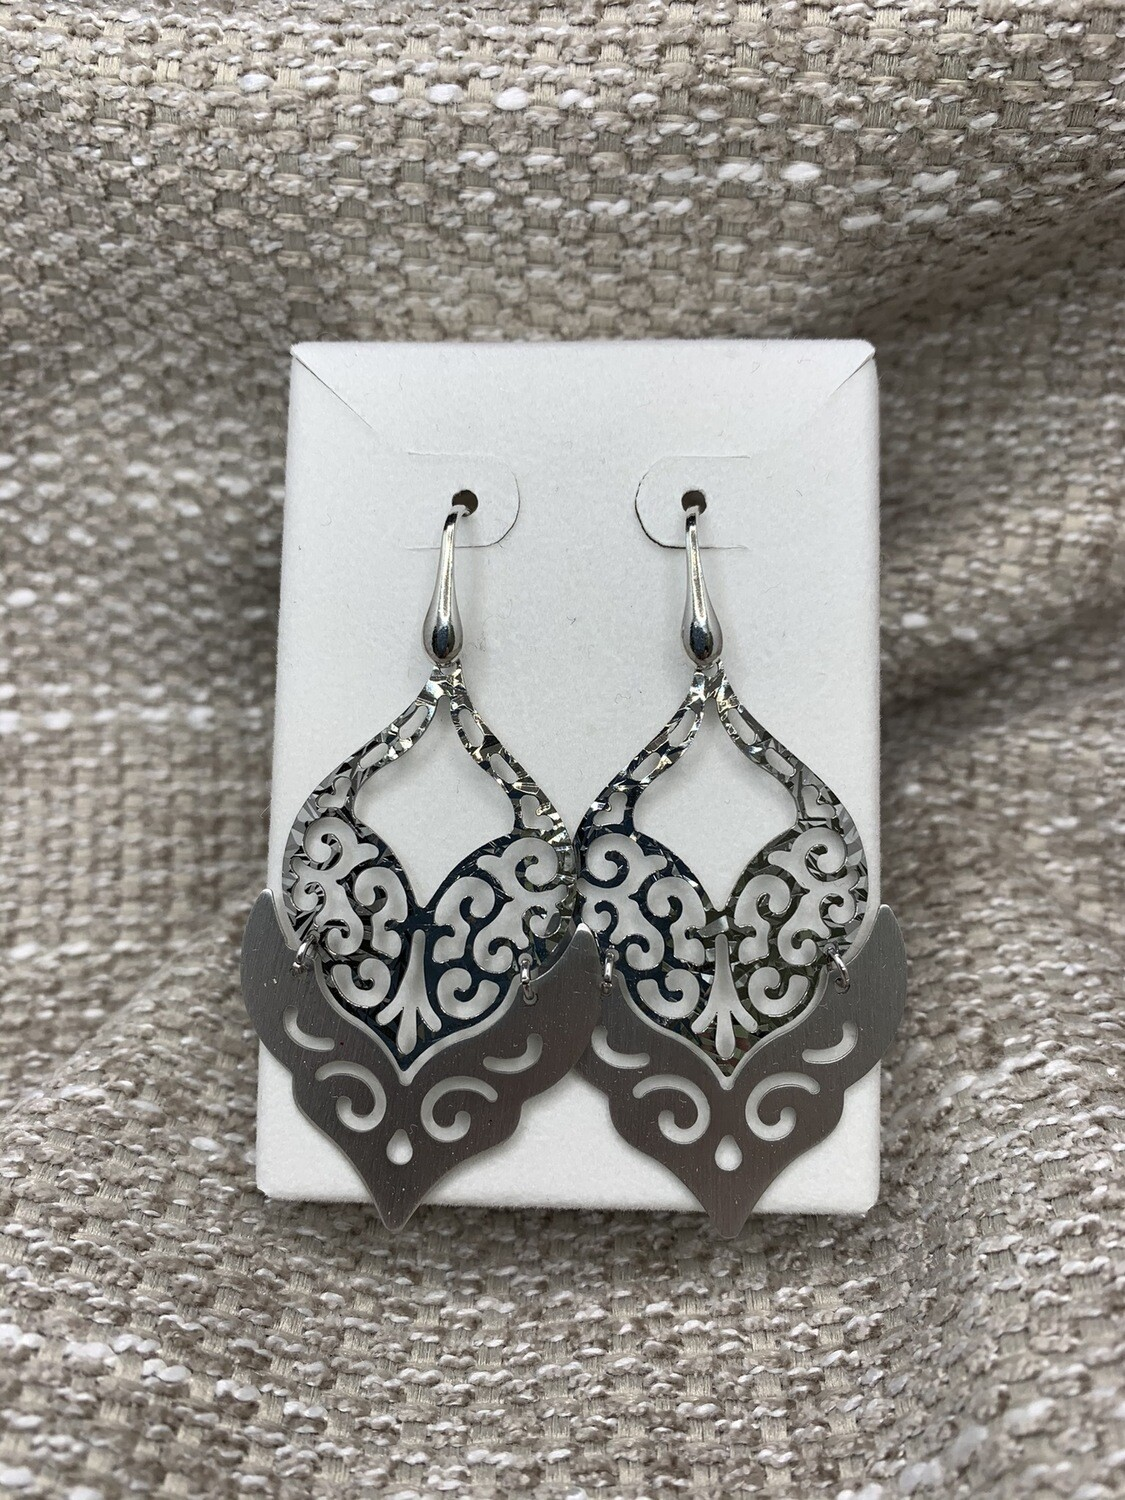 Hanging Sterling Silver Swirl Earrings Brushed And Polished Look